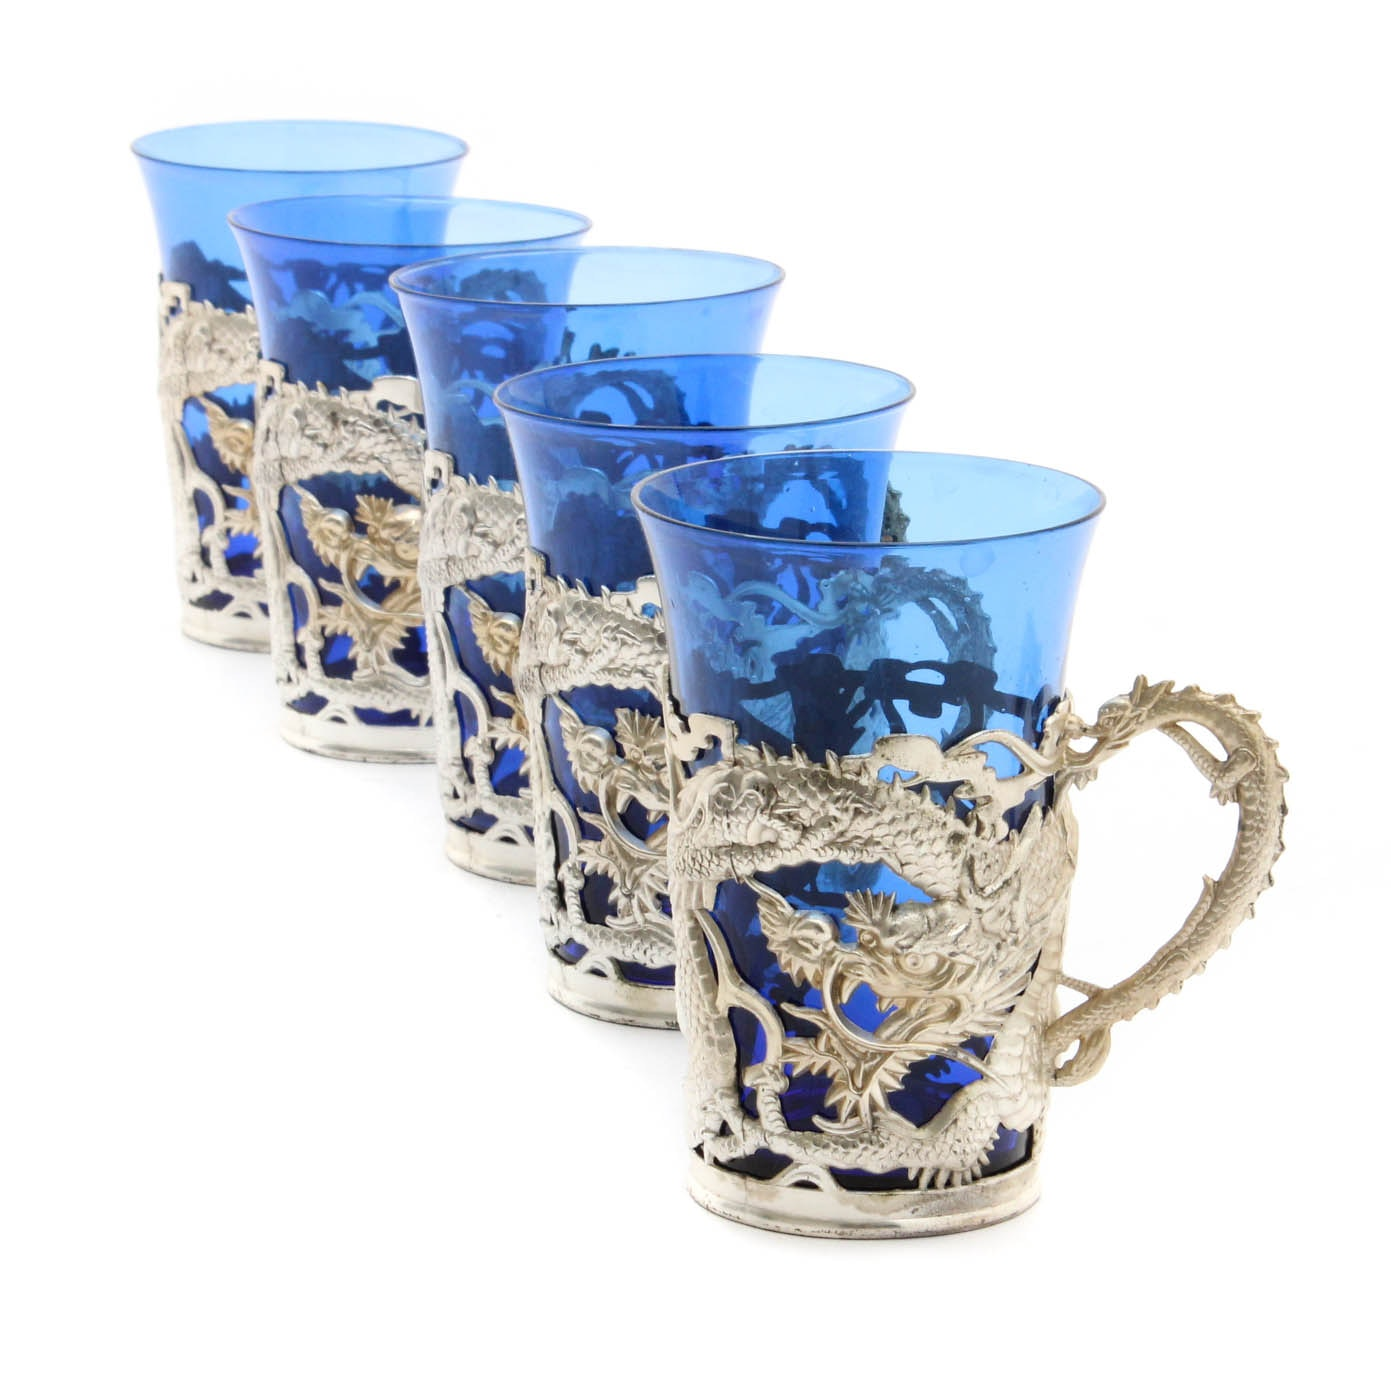 Chinese Dragon Motif Mugs with Blue Glass Liners